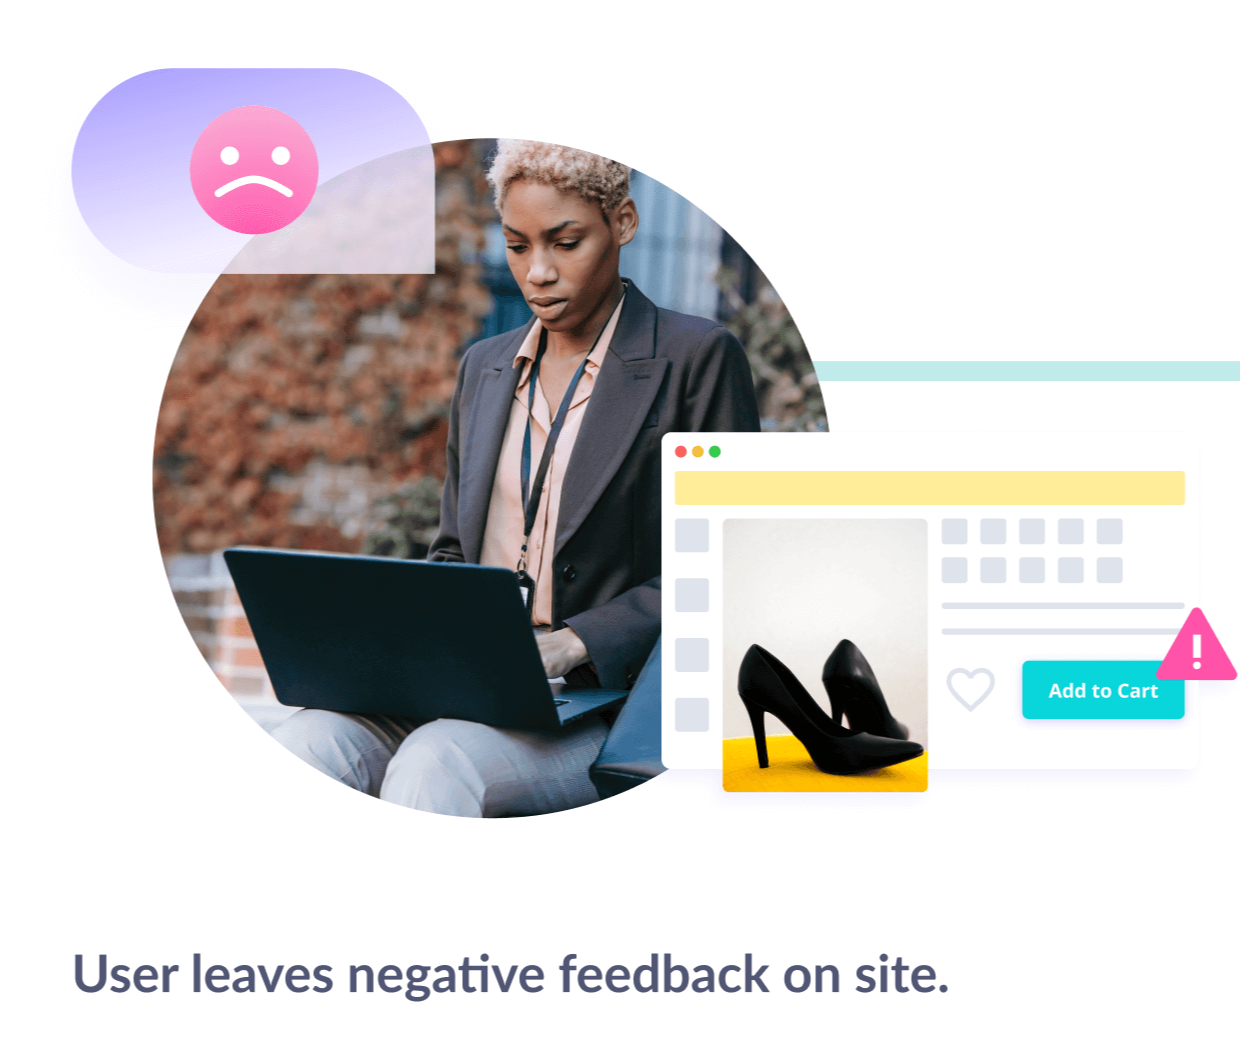 Auryc-integrates-with-slack -with-instant-customer-experience-alerts-1